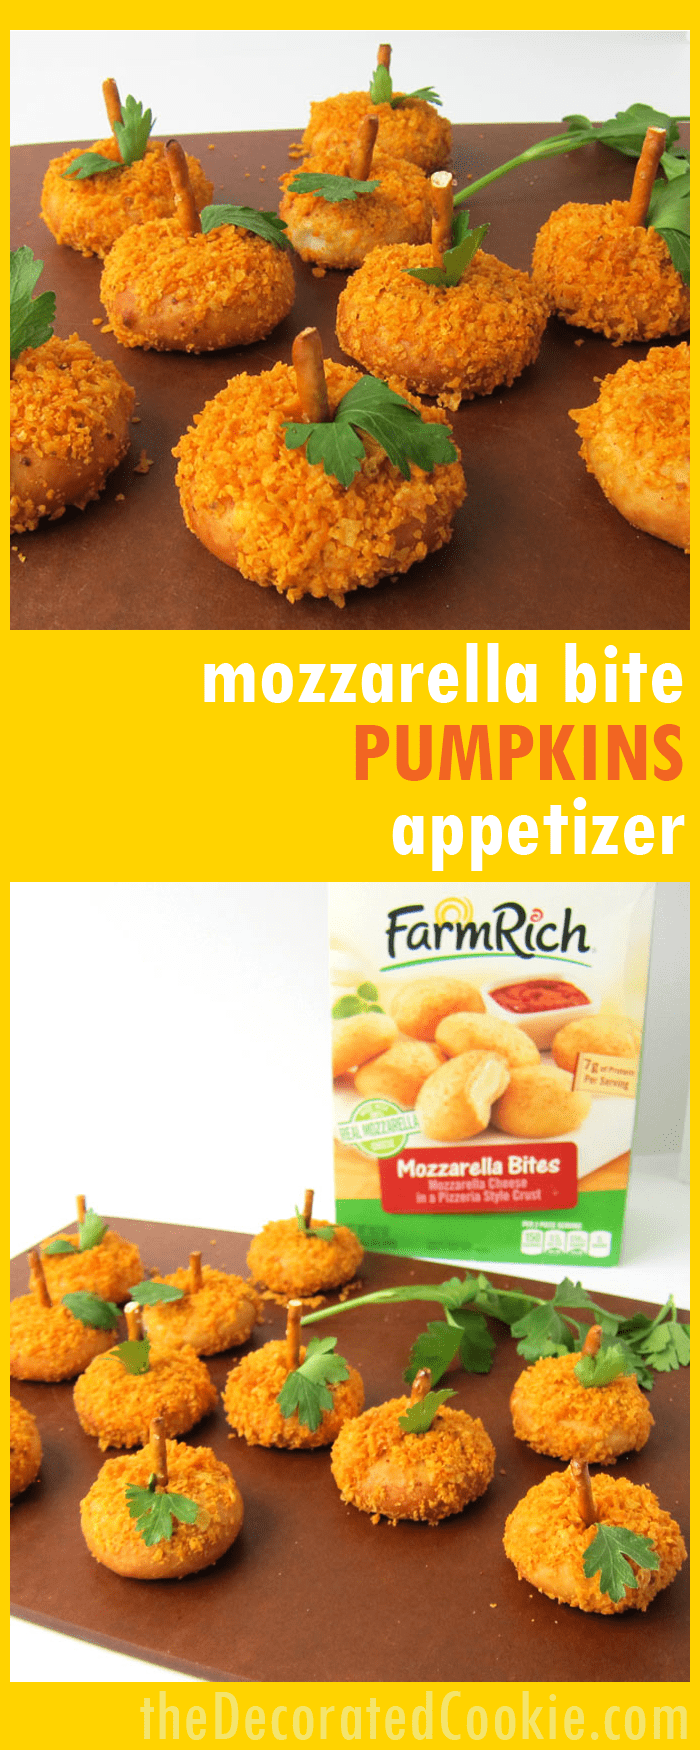 Halloween pumpkins appetizer -- quick Mozzarella bite appetizer for fall or halloween